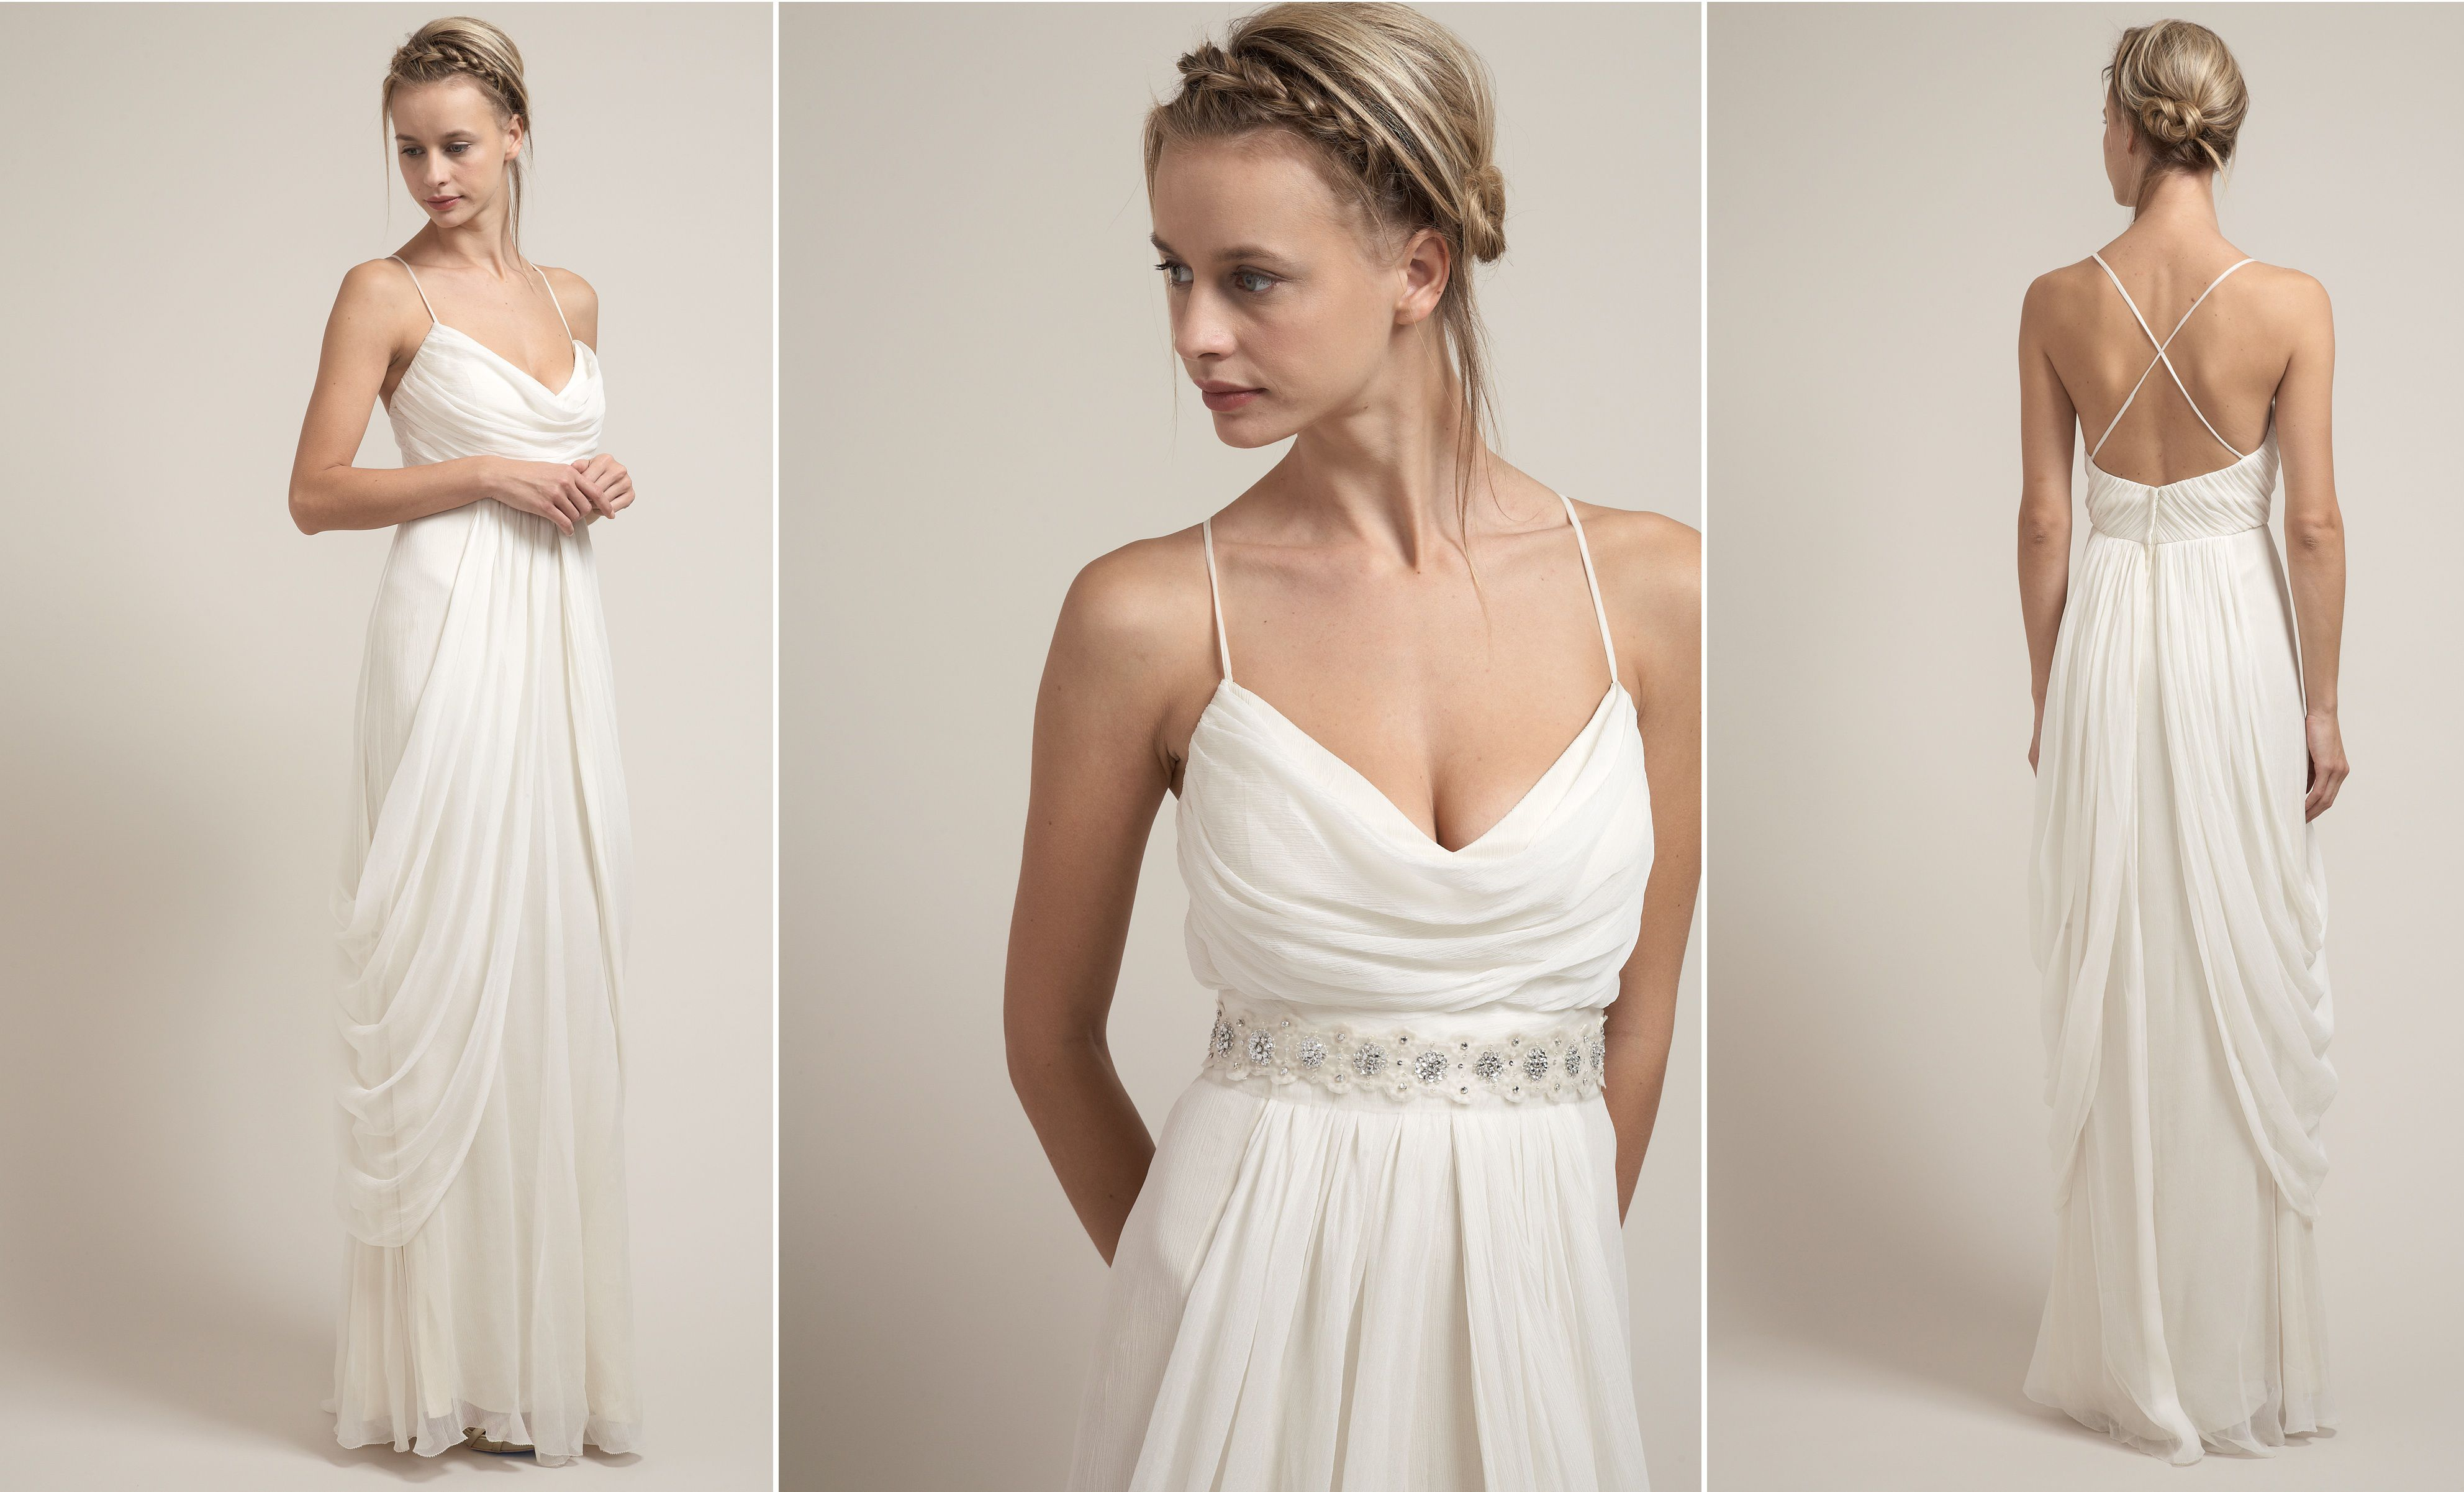 Chic And Simple Wedding Dresses By Cabotine: Rustic Wedding Gowns By Saja